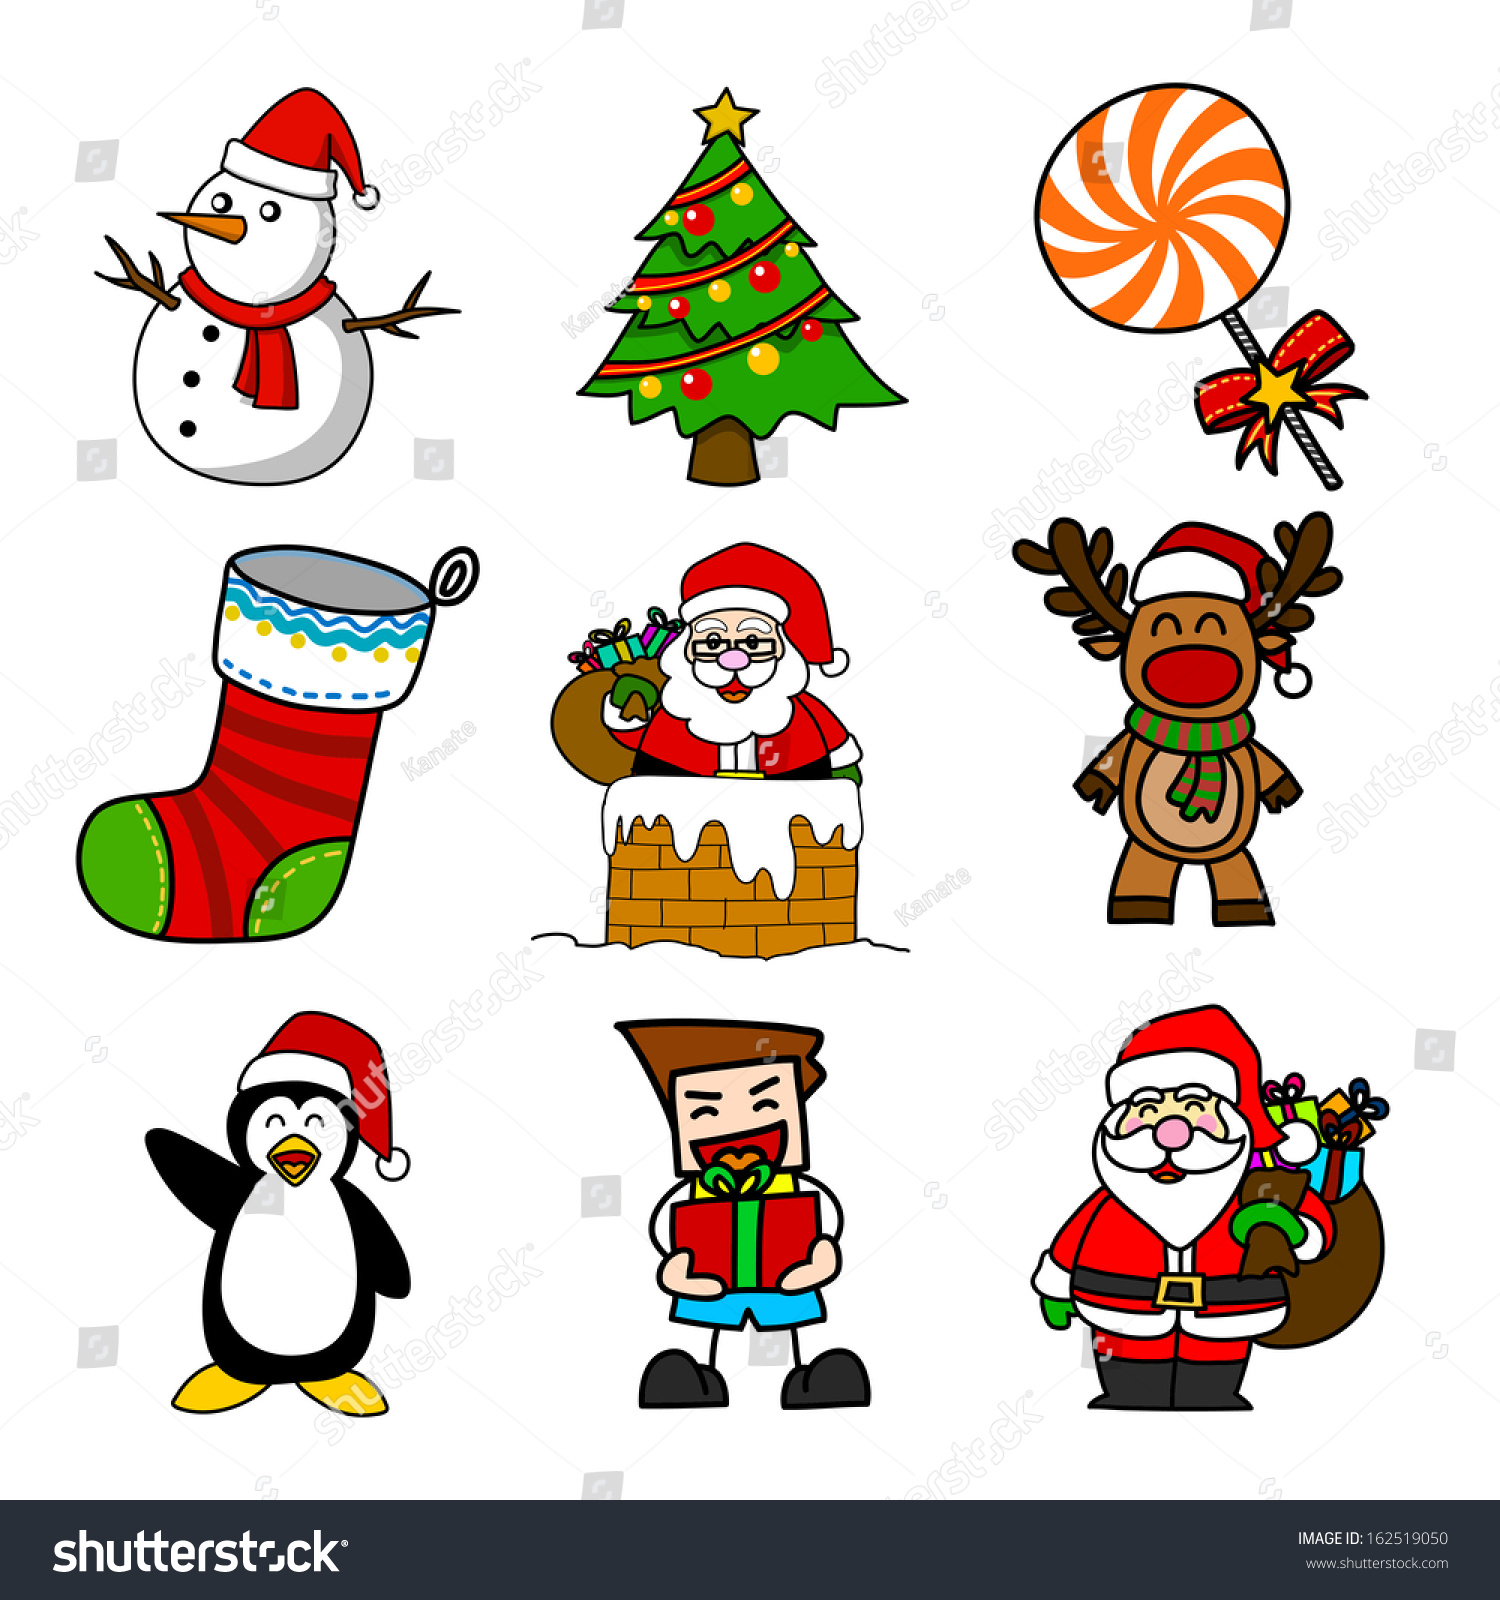 christmas cartoon vector illustration eps10 stock vector elf hat clip art transparent elf hat clip art in black and white